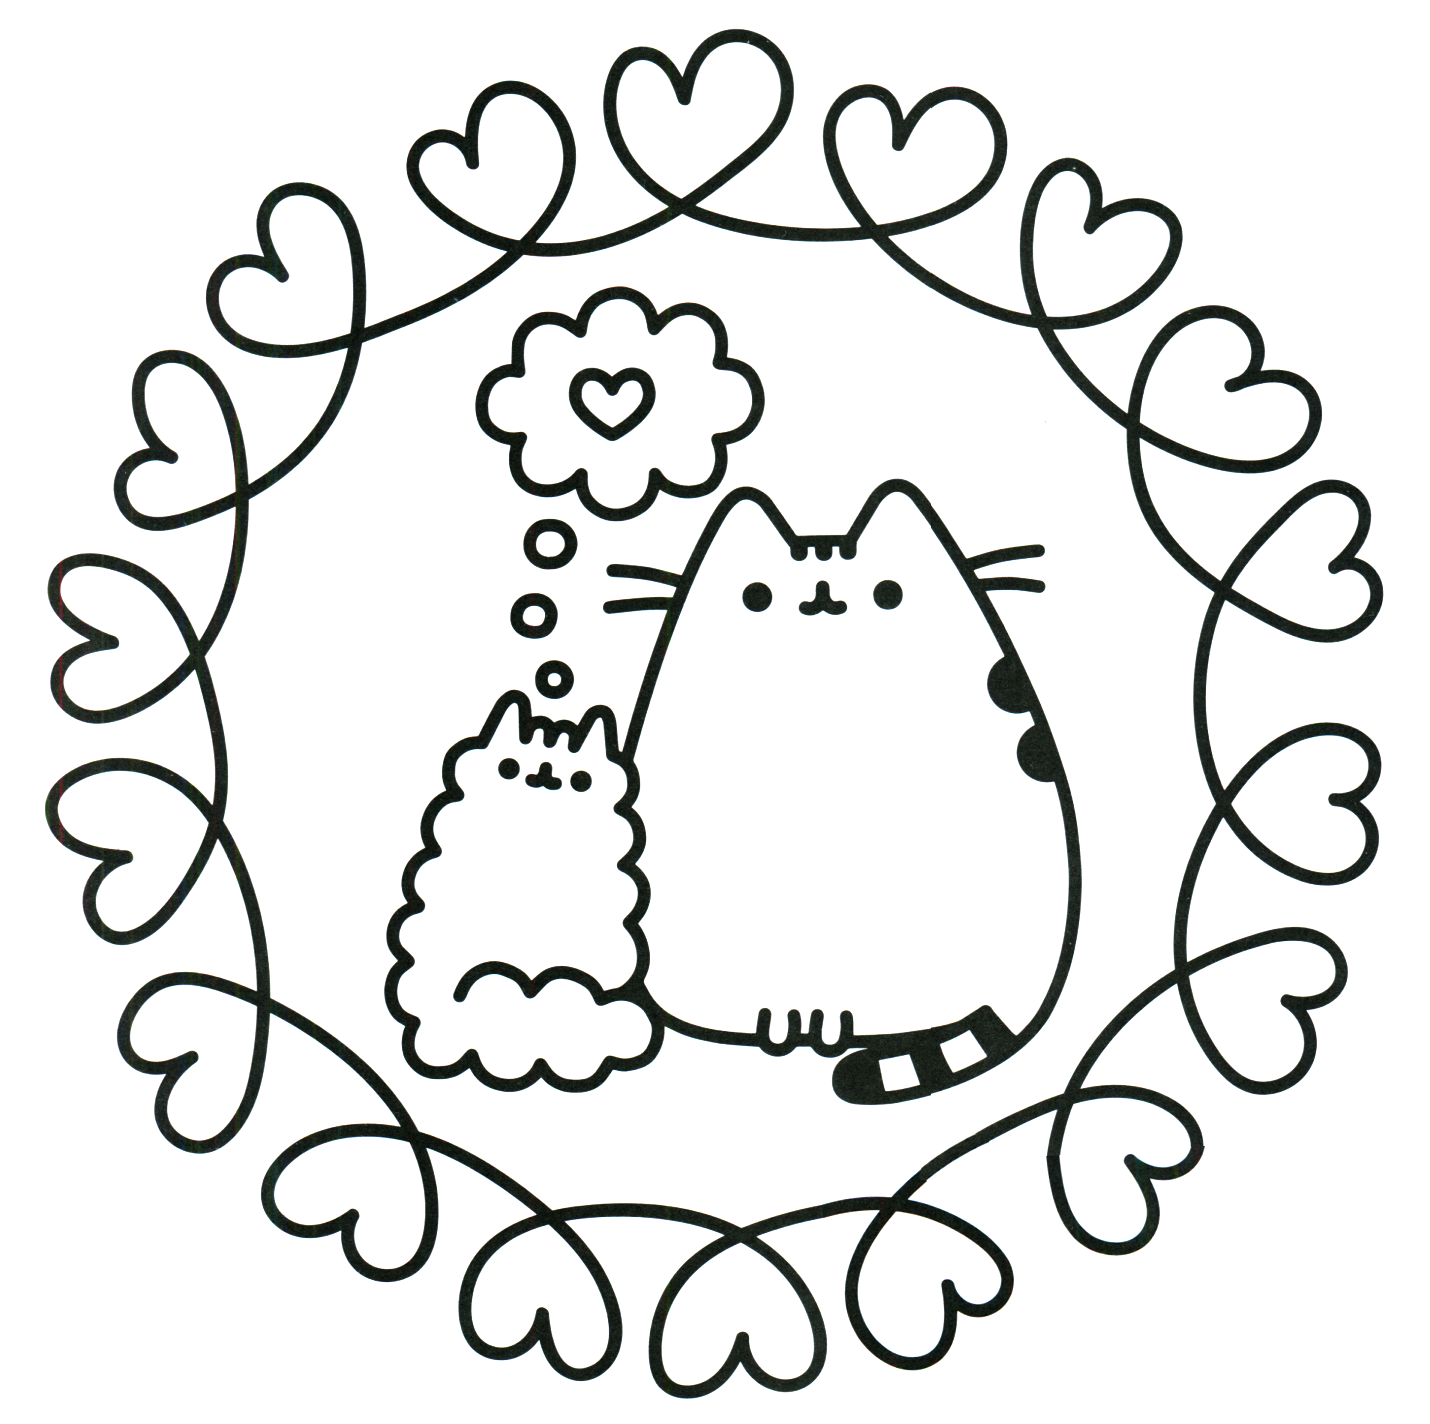 Pusheen coloring pages best coloring pages for kids Coloring book day